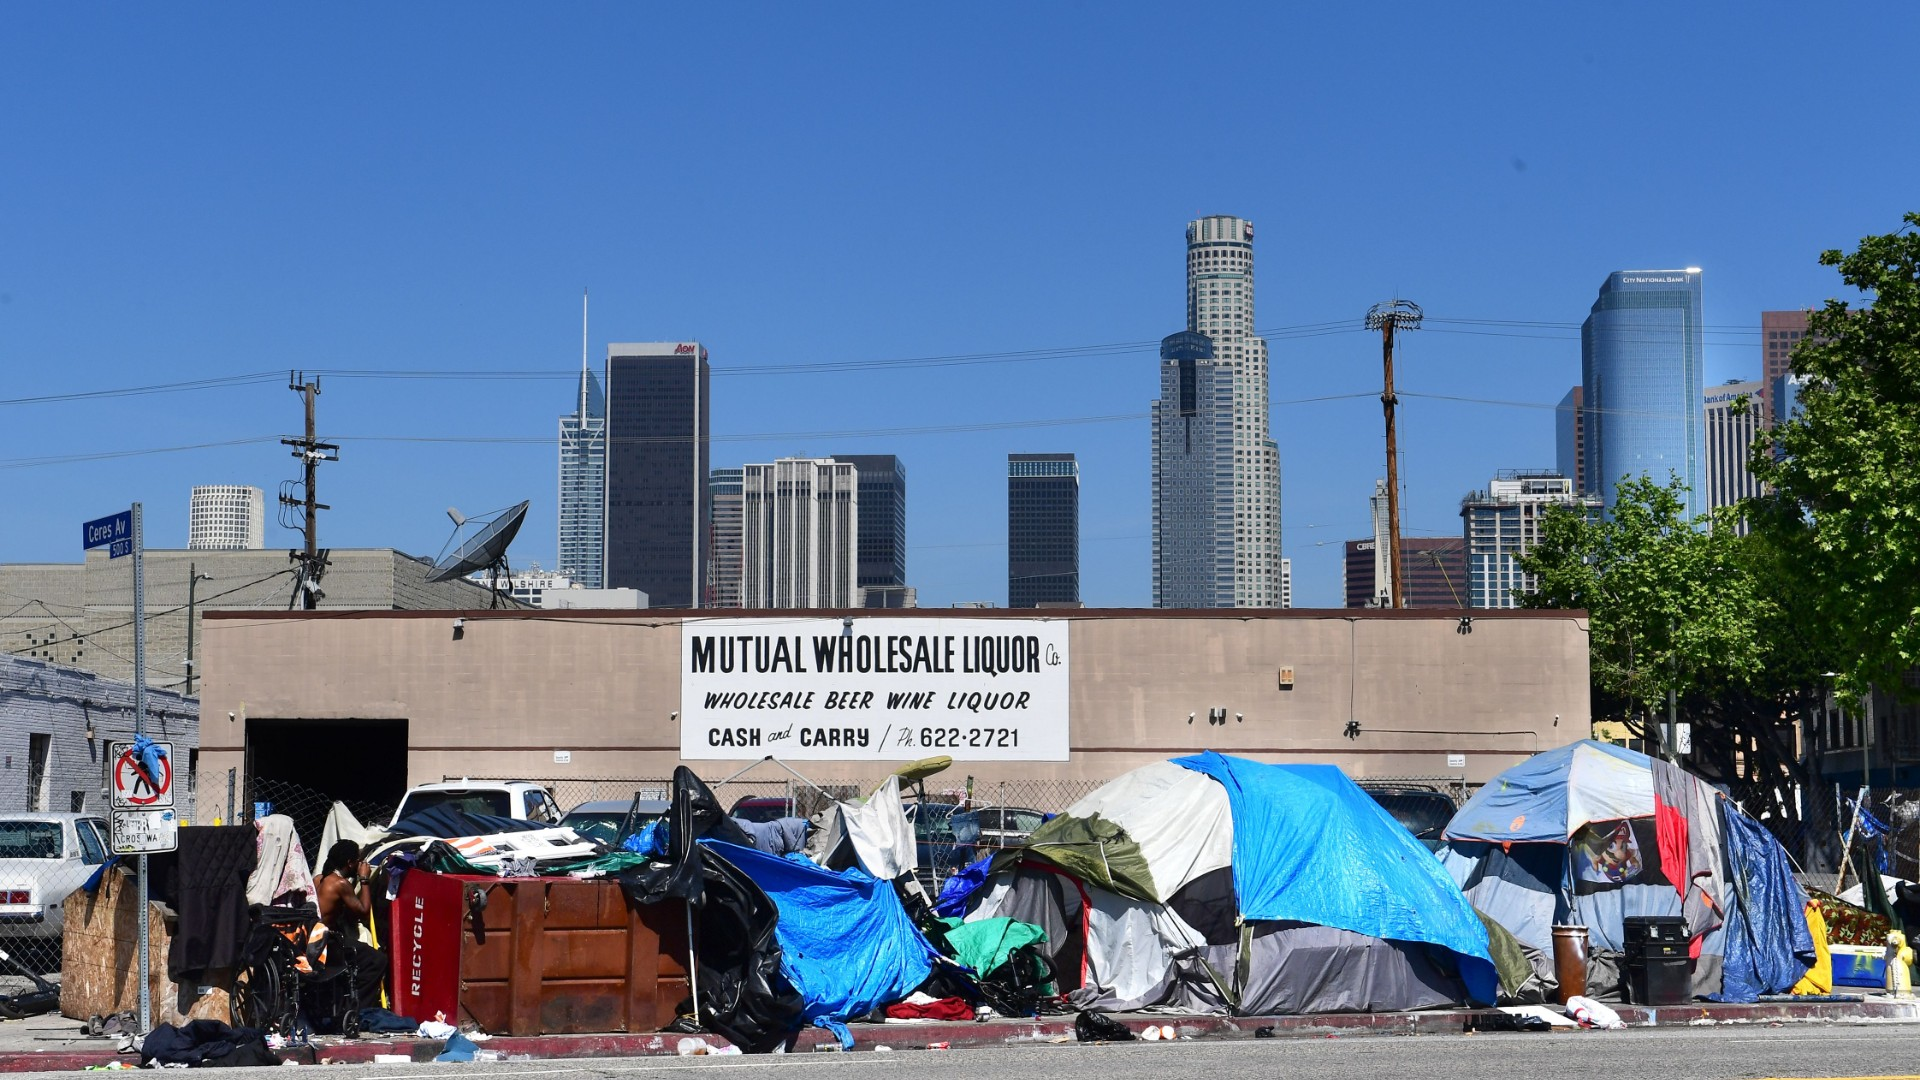 Tents housing the homeless line a street in downtown Los Angeles, California on April 22, 2020, amid the novel coronavirus pandemic. (Frederic J. BROWN/AFP/Getty Images)